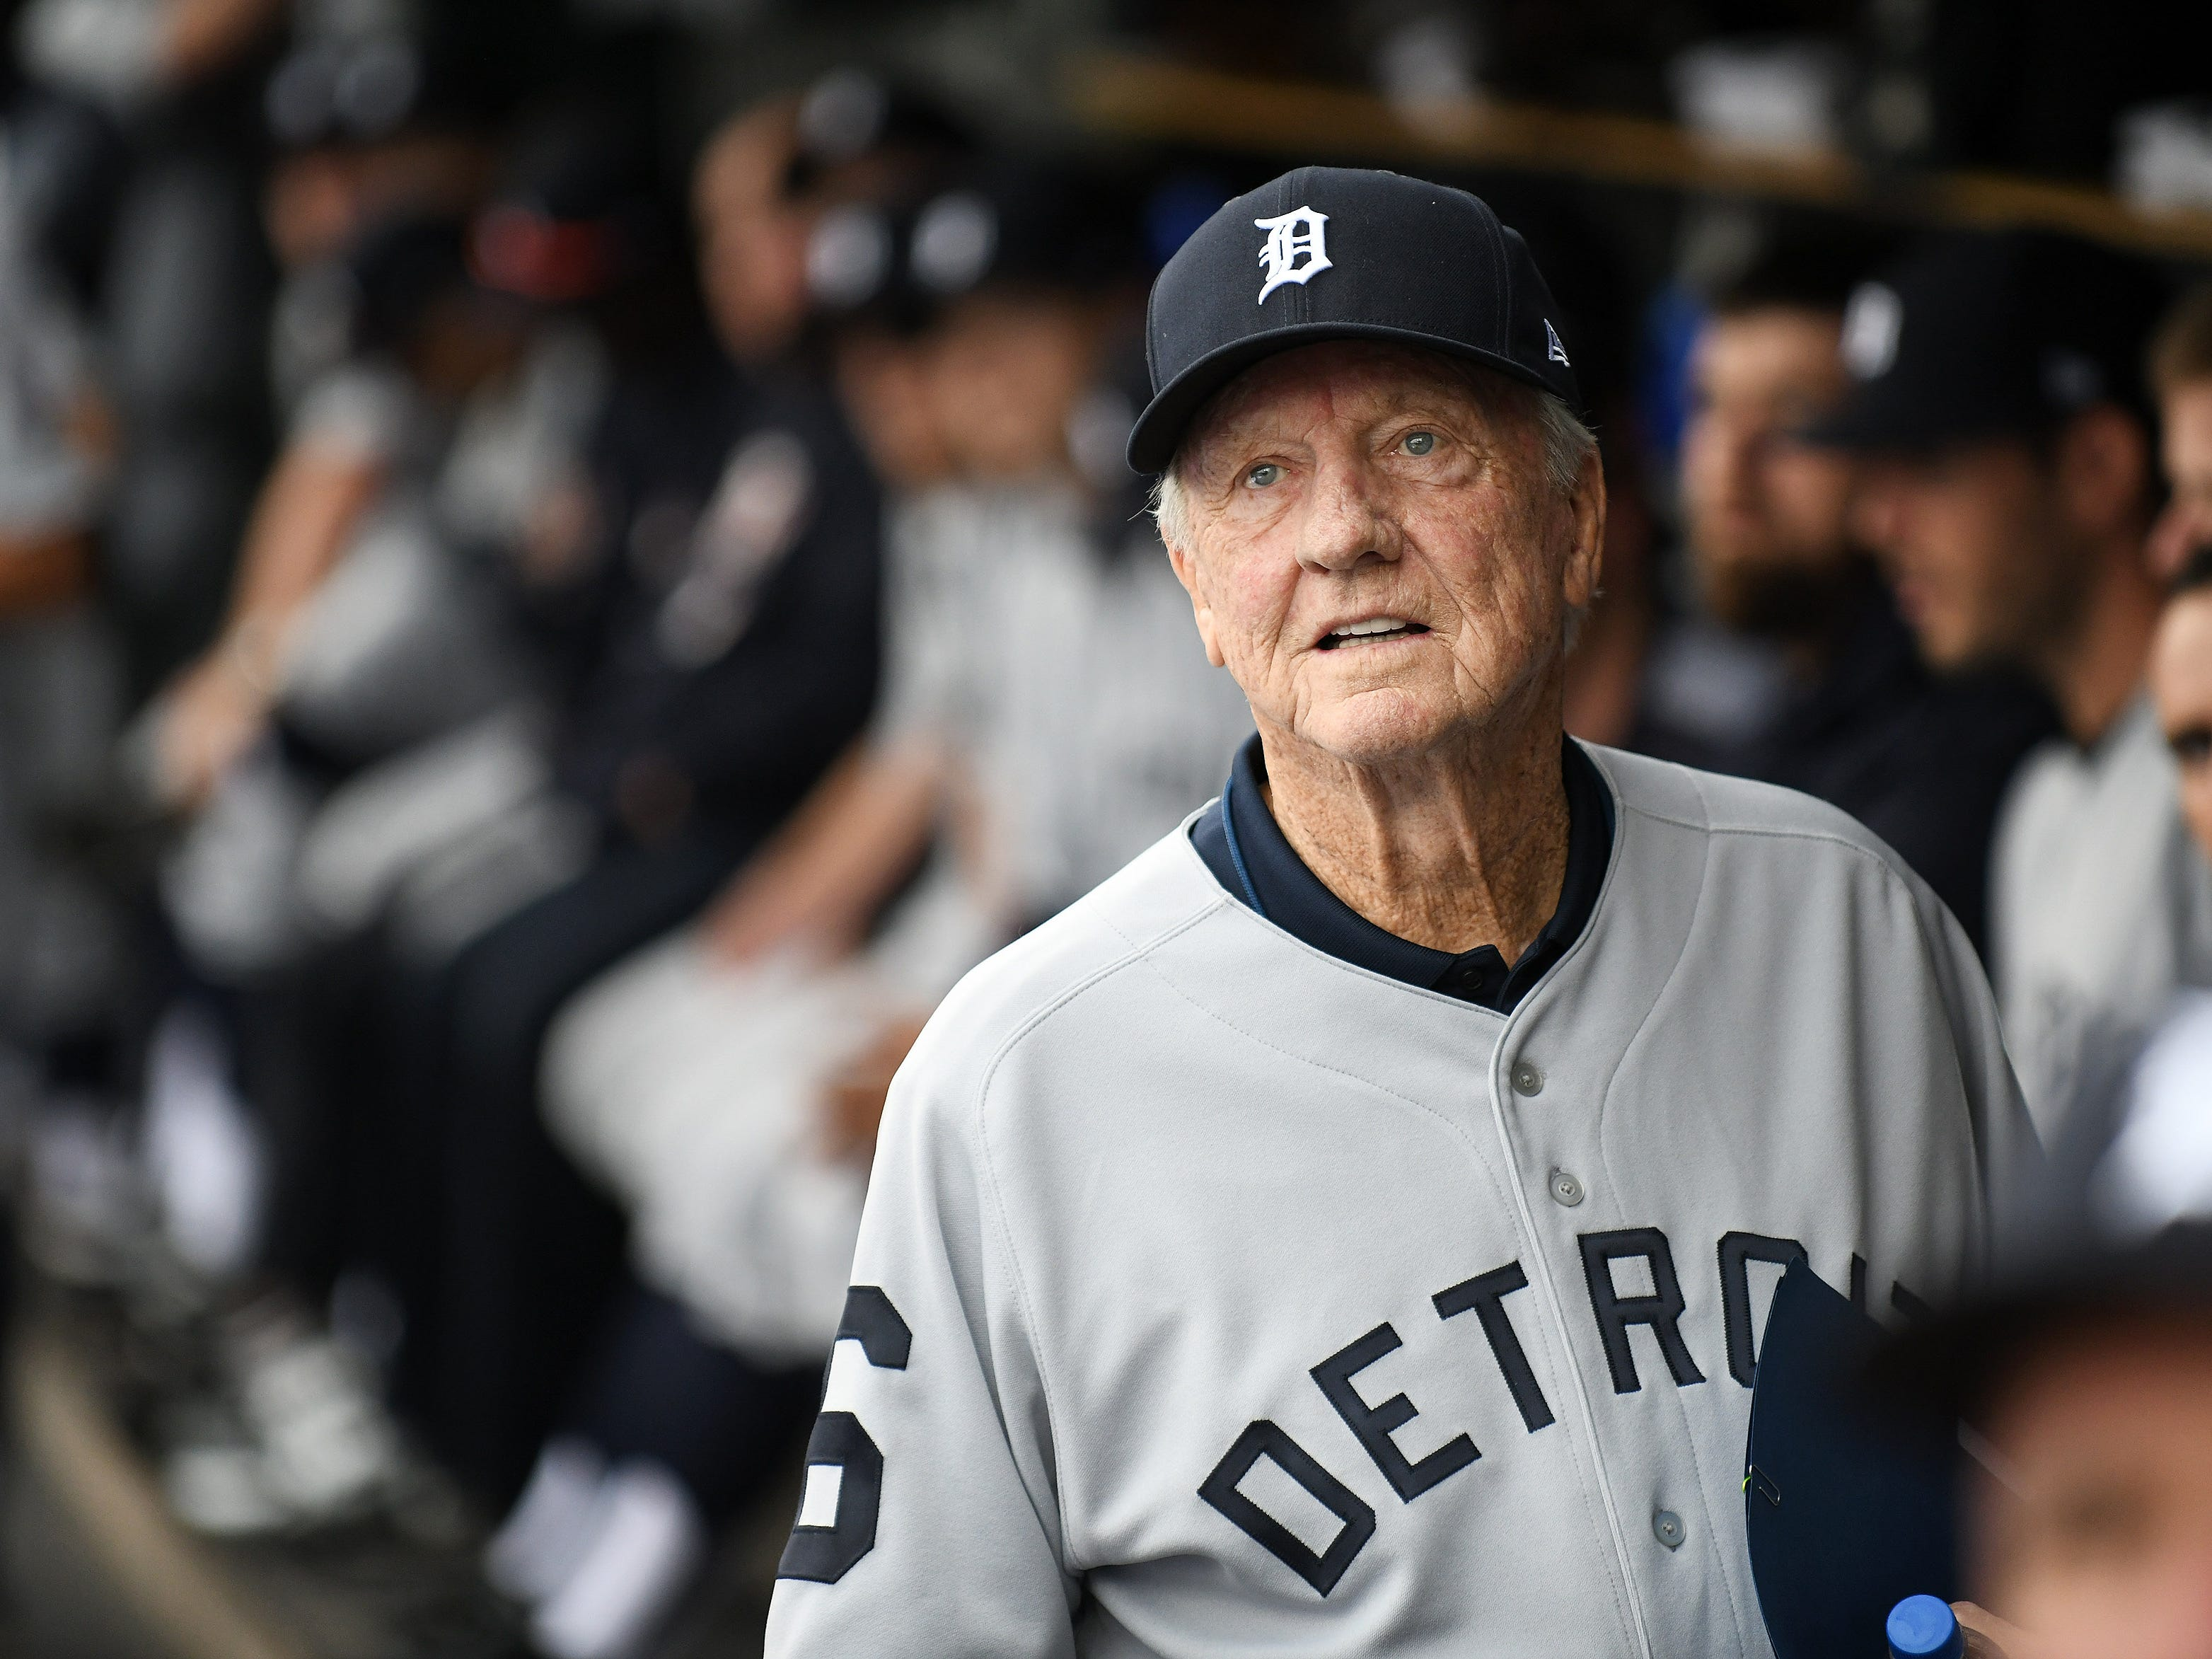 Al Kaline, Hall of Famer and member of the 1968 Tigers, watches as a video is played on the scoreboard.